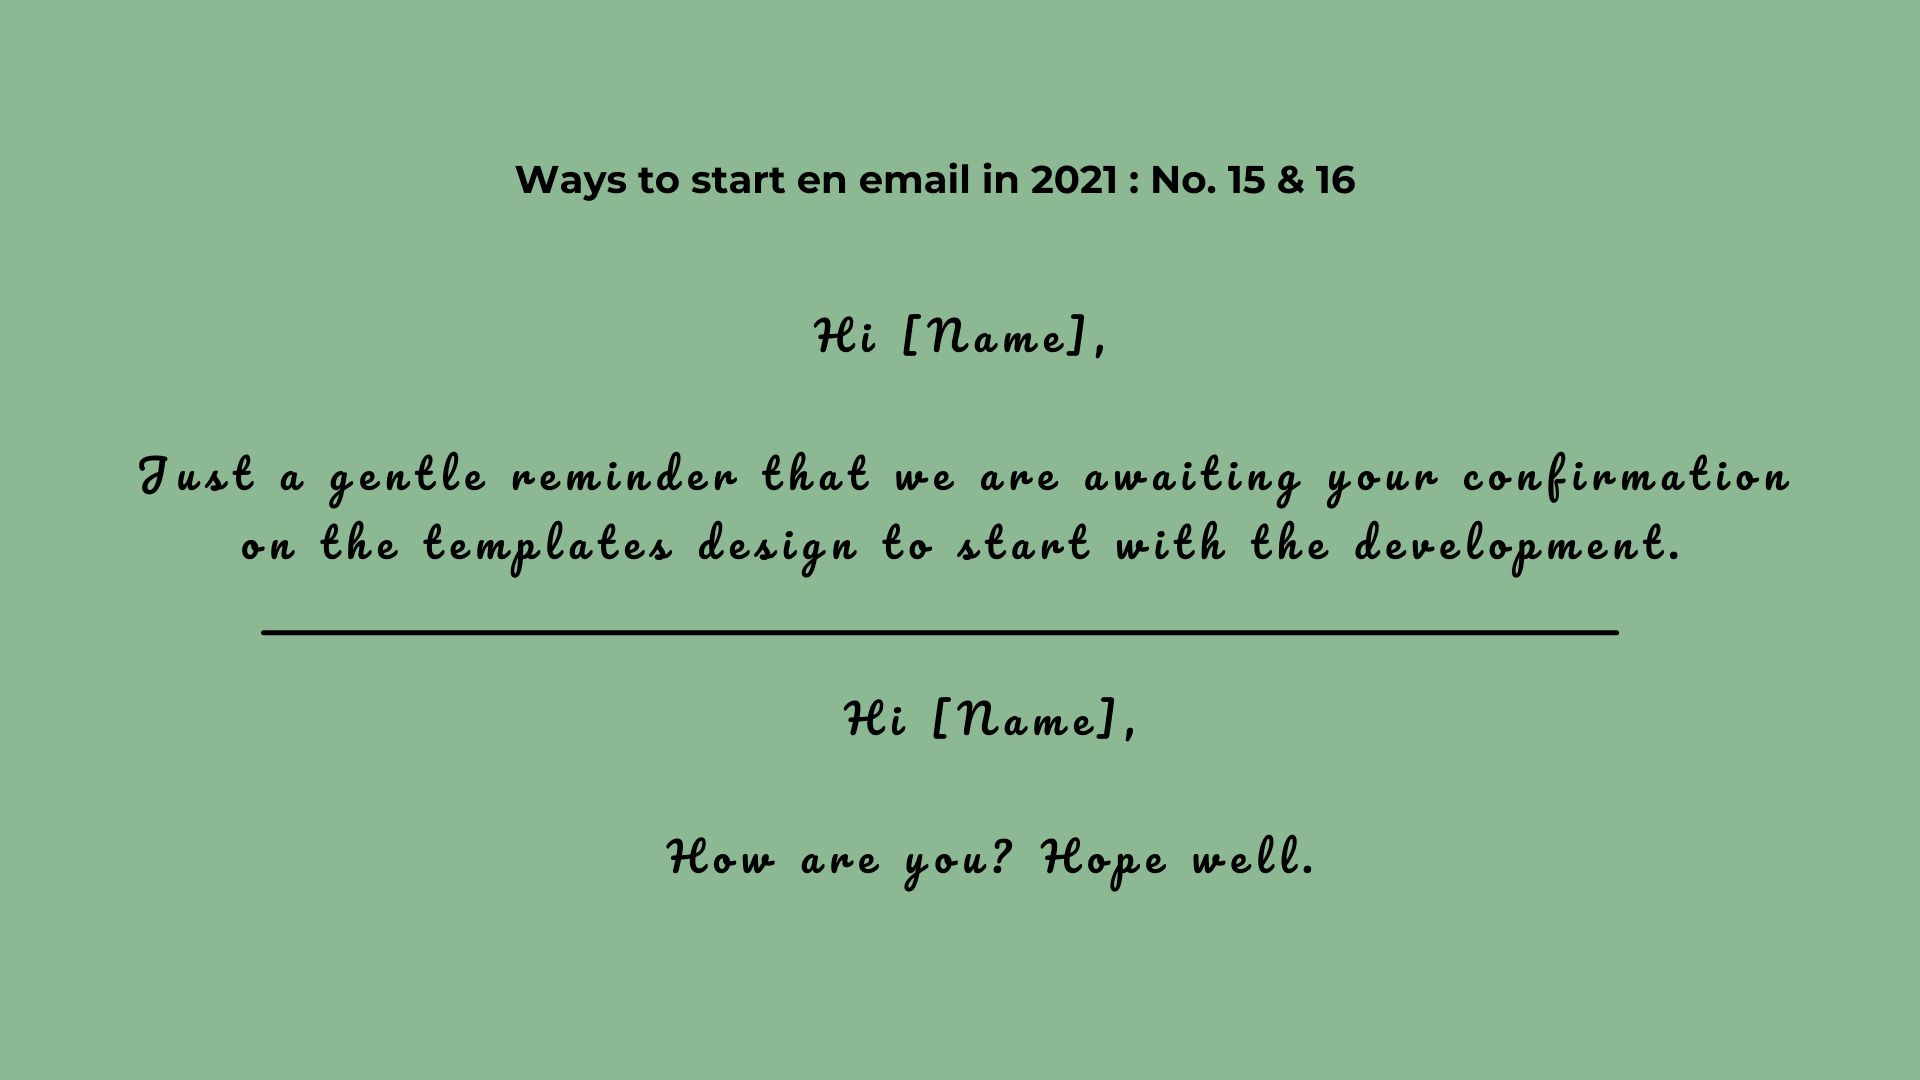 best-tips-to-start-an-email-2021